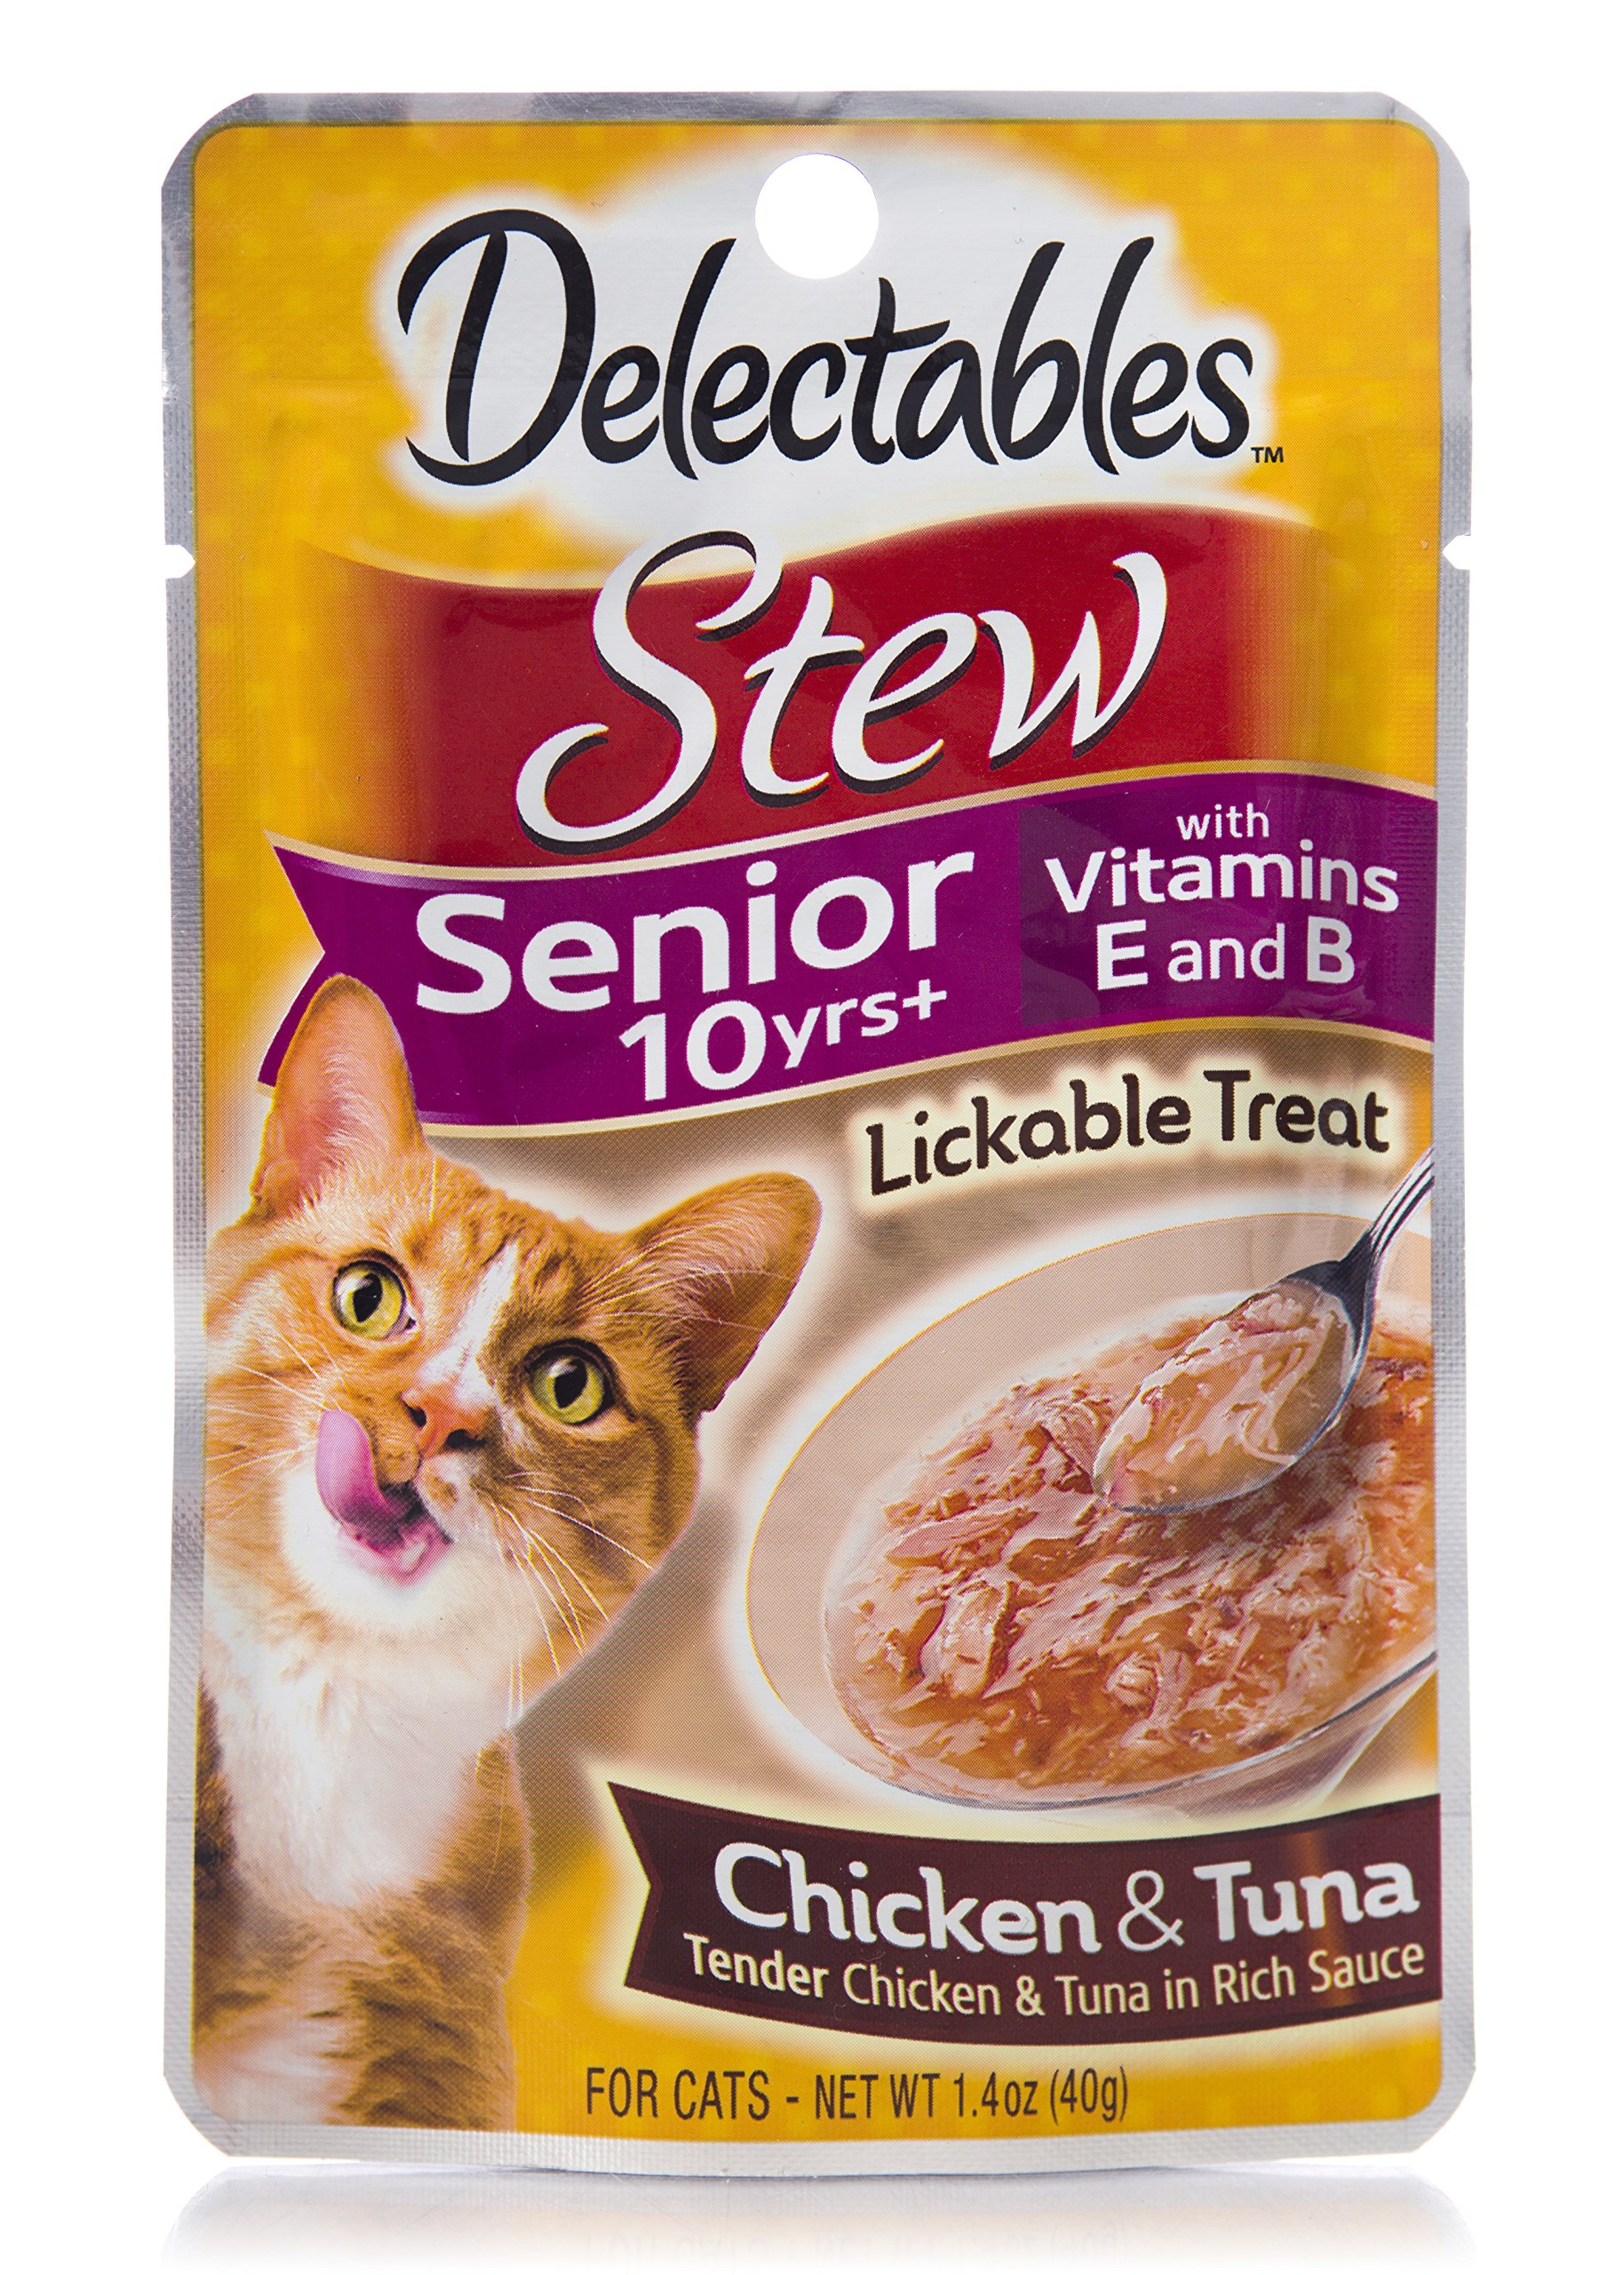 Delectables Stew Lickable Treat Pack of 12 Standard Packaging